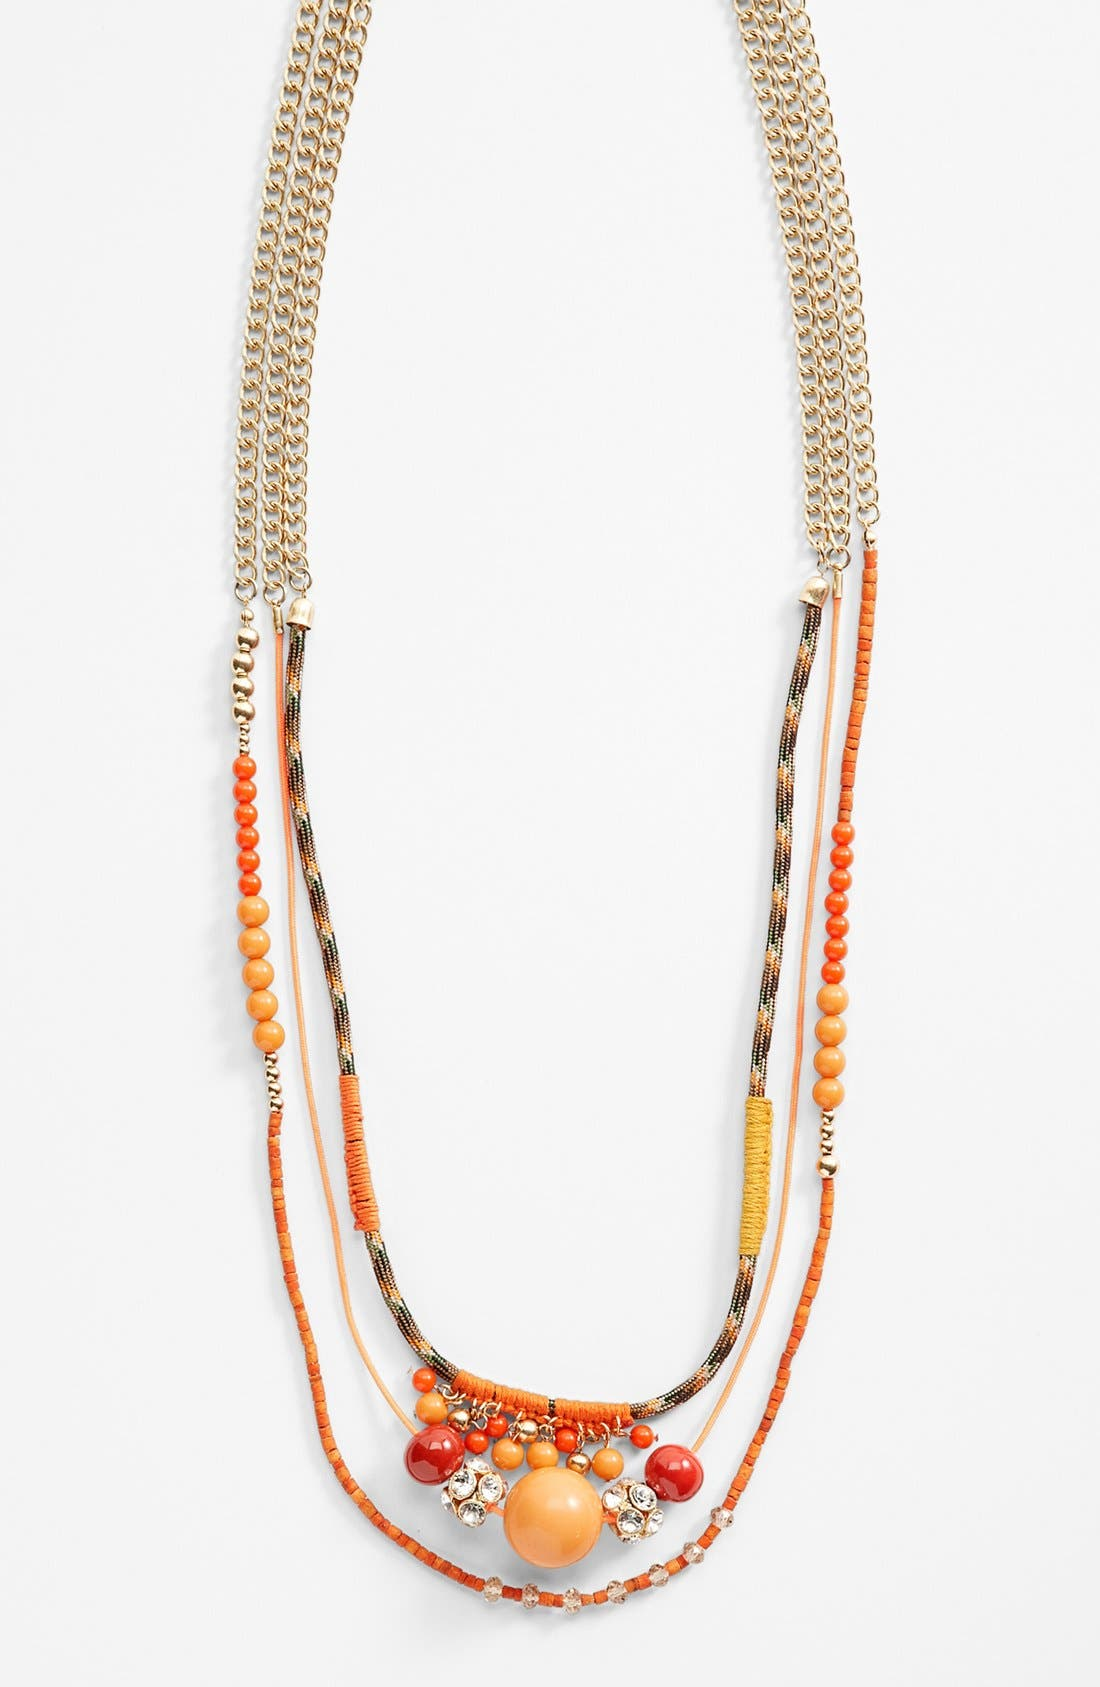 Main Image - Lydell NYC Mixed Media Multistrand Necklace